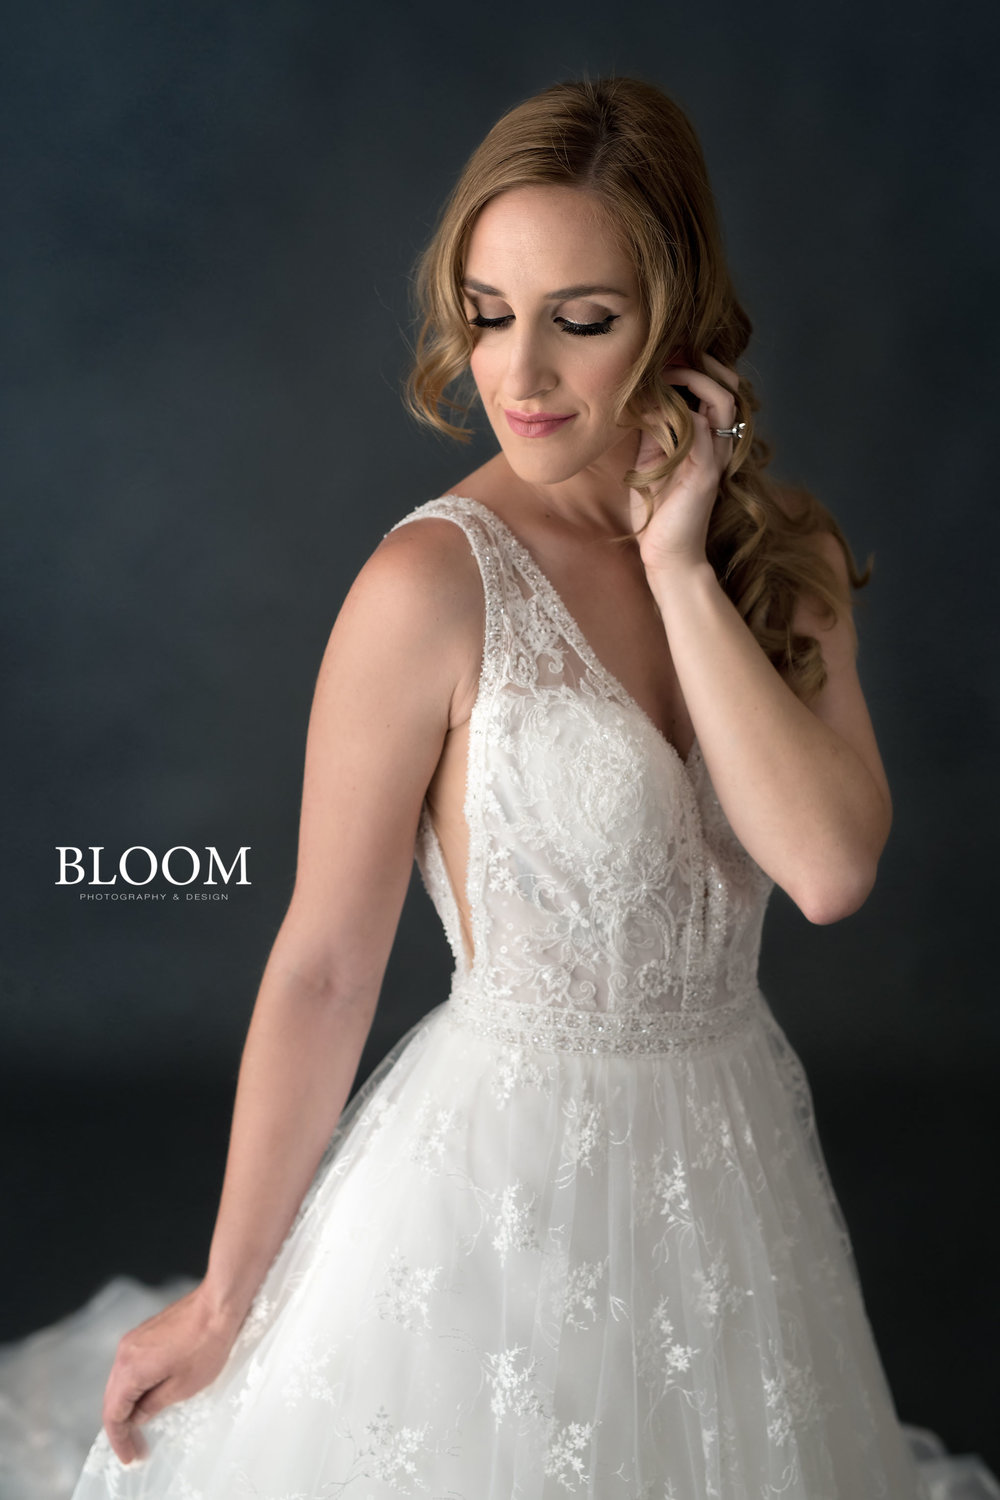 wedding_bridal_san_antonio_photographer_texas_bloom_033017_3870.jpg